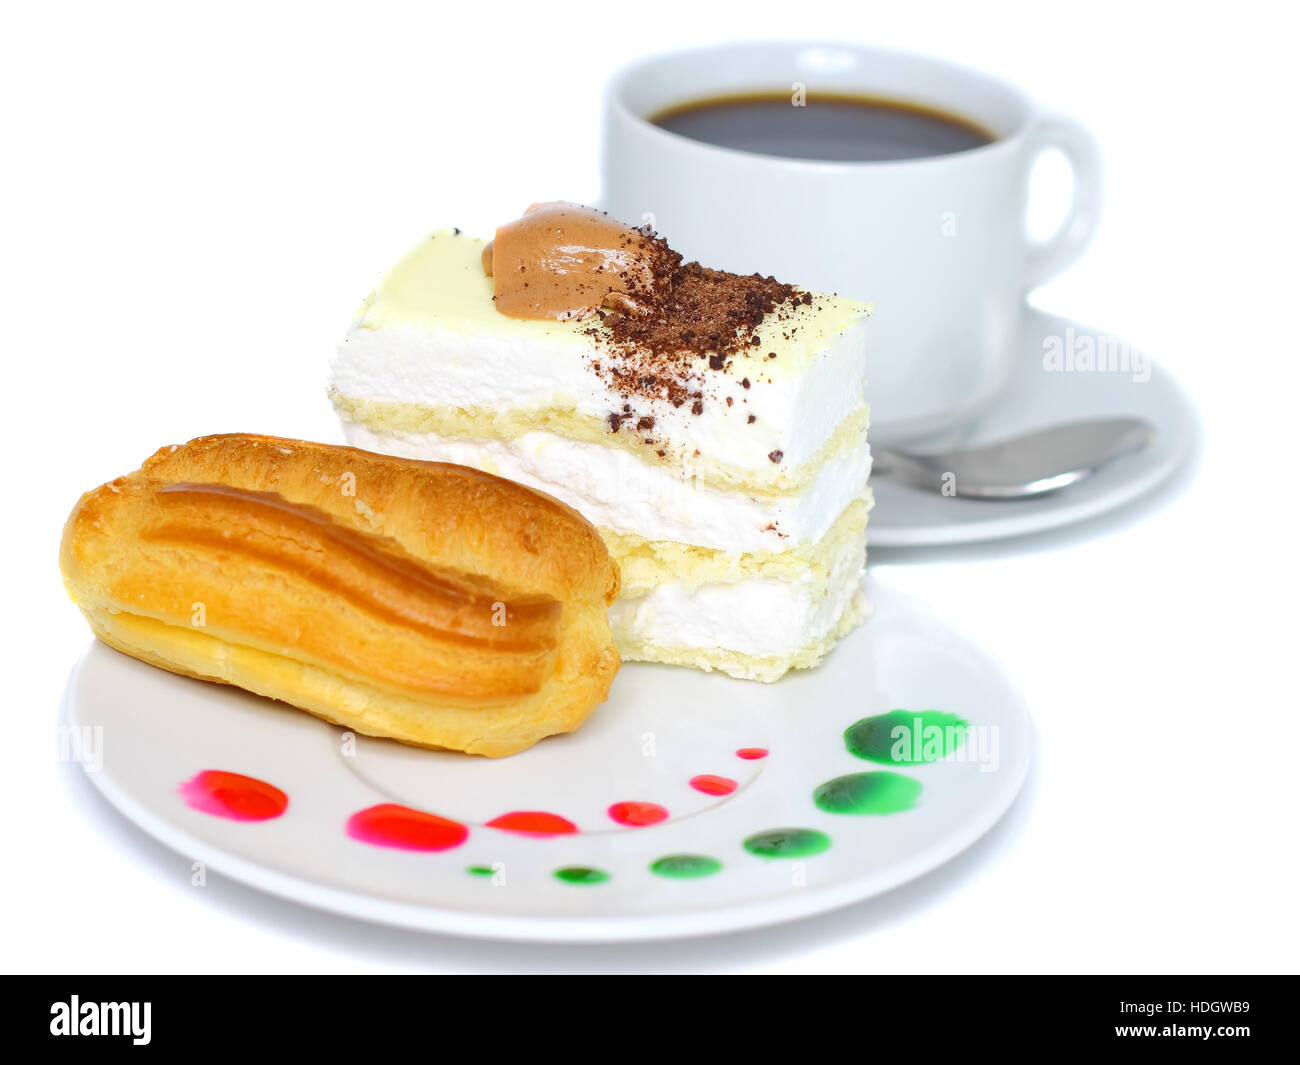 Sponge cakes and eclair cake on plate with fruit juice spots. Isolated - Stock Image